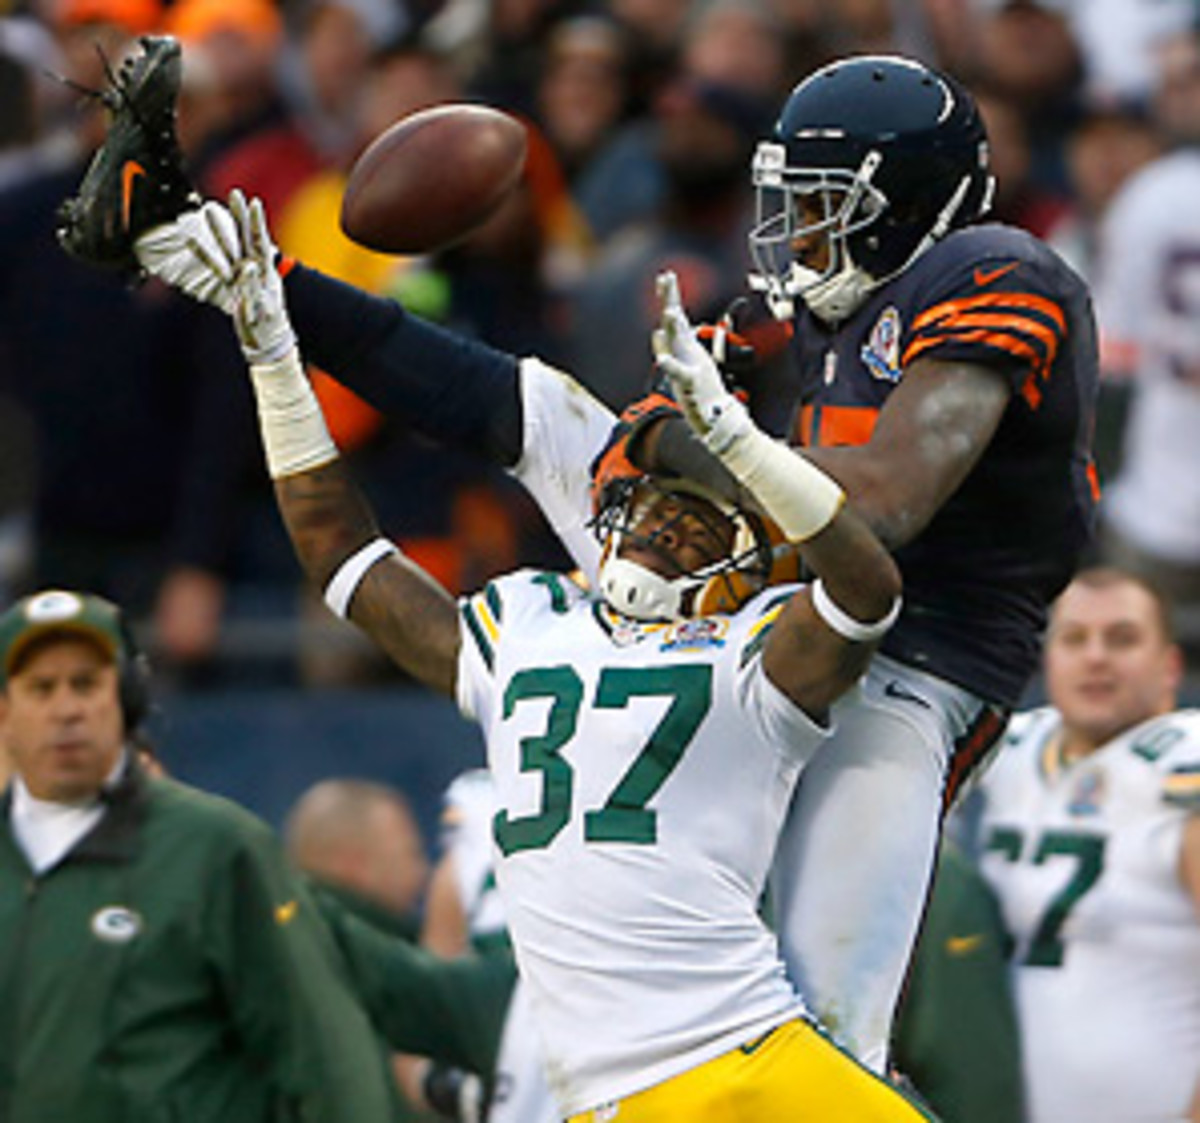 Sam Shields' work against Alshon Jeffery made life difficult for Jay Cutler and the Bears' passing game. (Brian Cassella/MCT/ABACAUSA.COM)